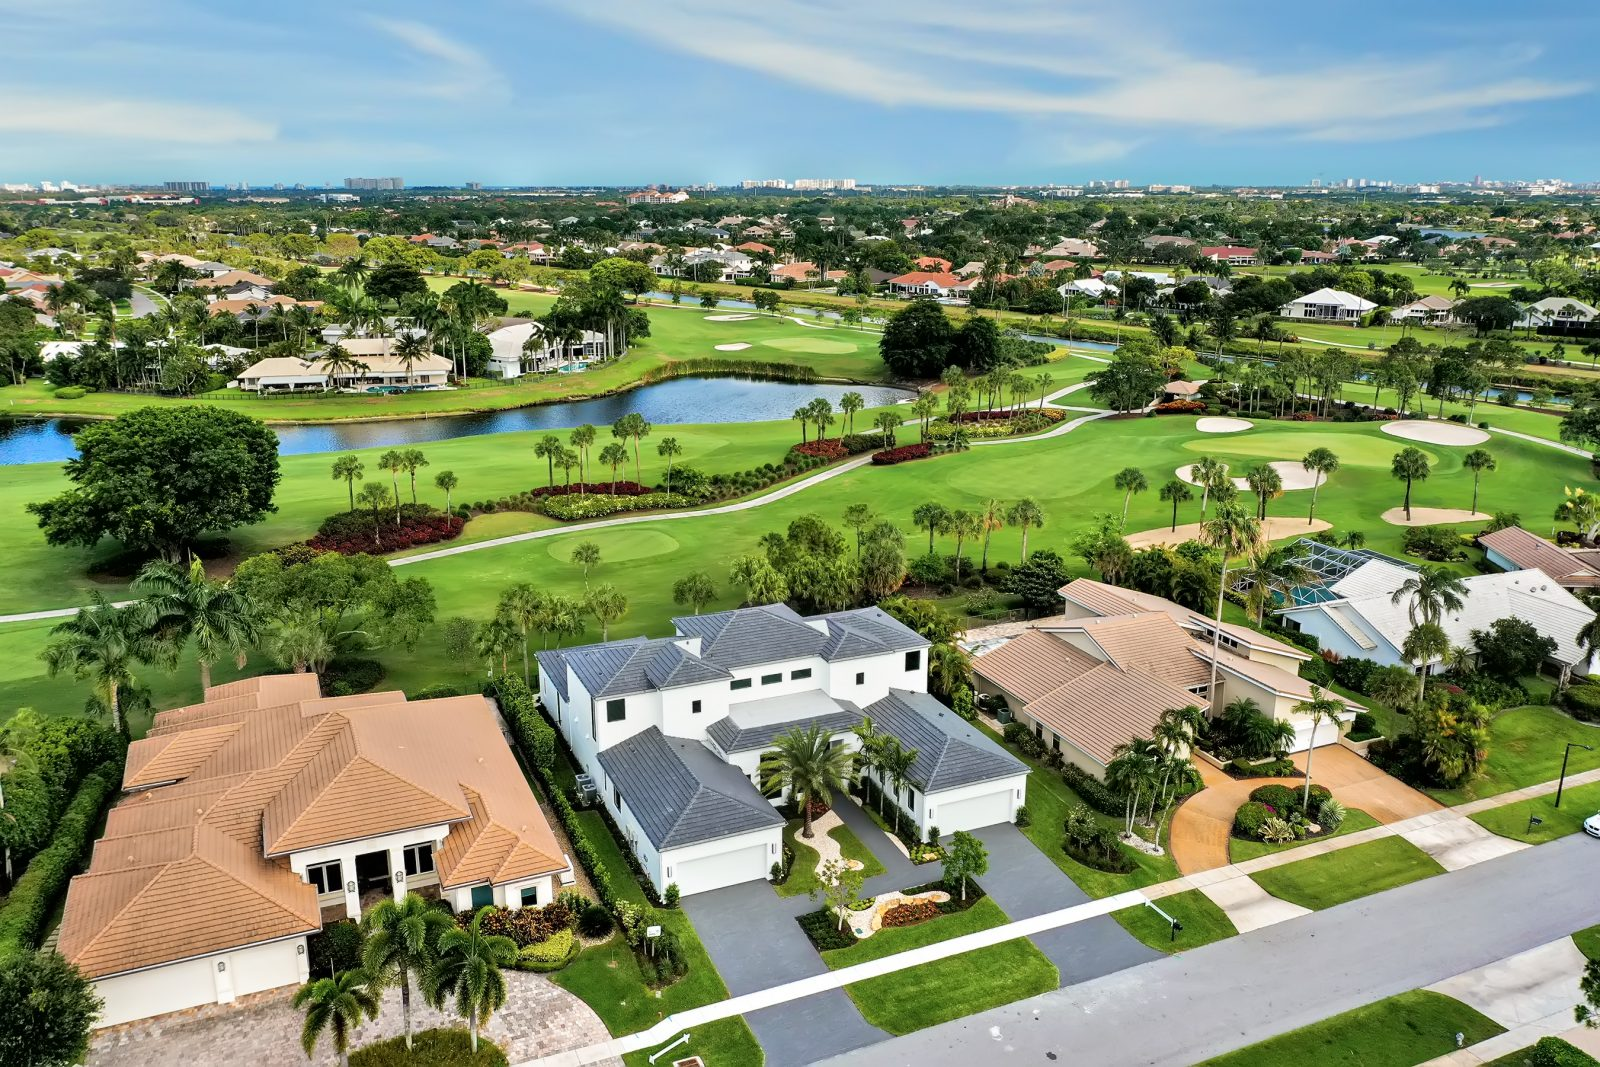 Photo of Delaire Country Club